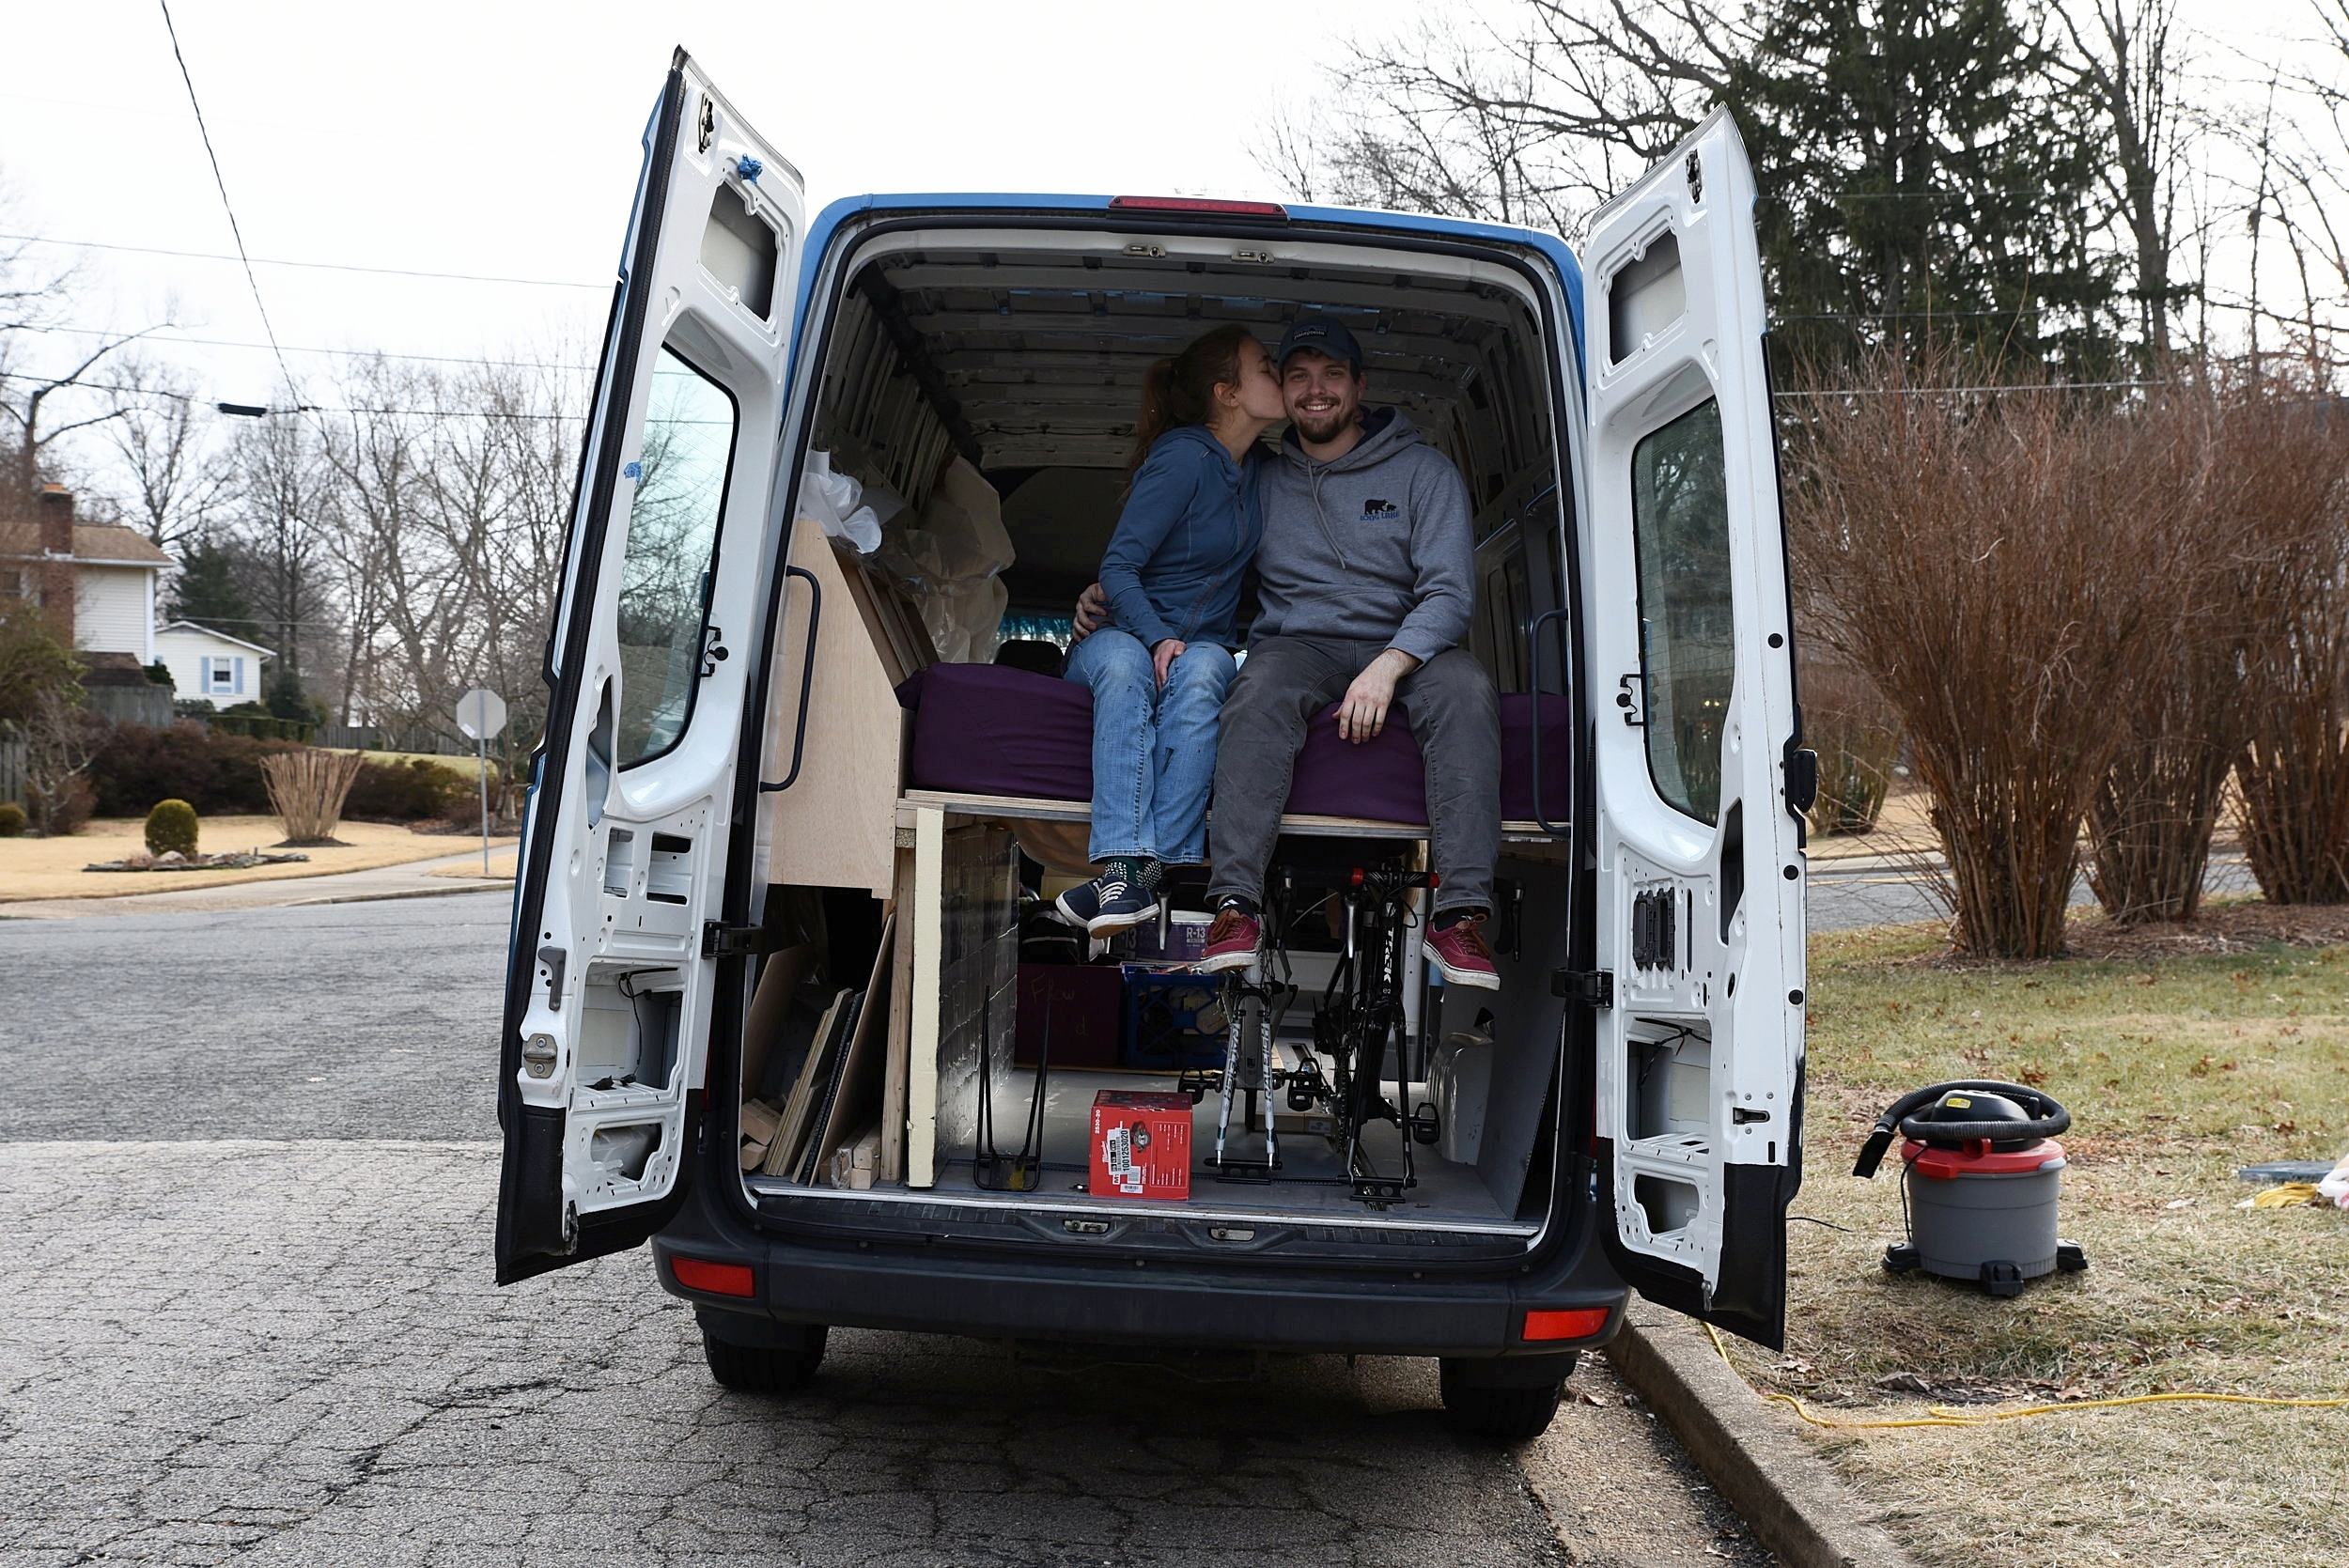 With the bikes in place under the bed platform, large storage areas on the driver's side, and our mattress on top, we were pretty satisfied with our work.